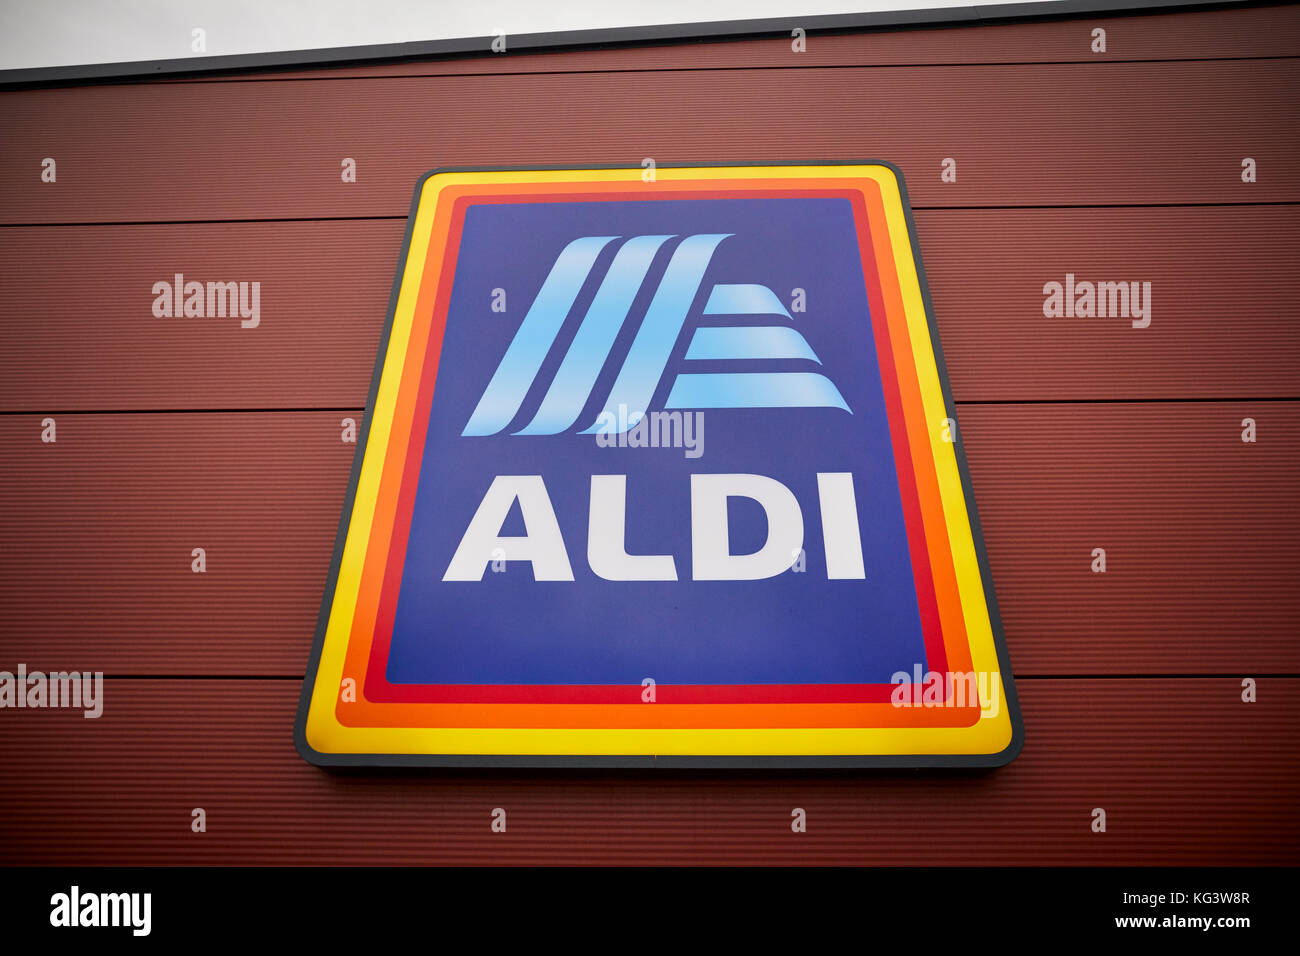 Aldi logo stock photos aldi logo stock images alamy new design aldi sd logo lightbox sign on the exterior of the german global discount supermarket biocorpaavc